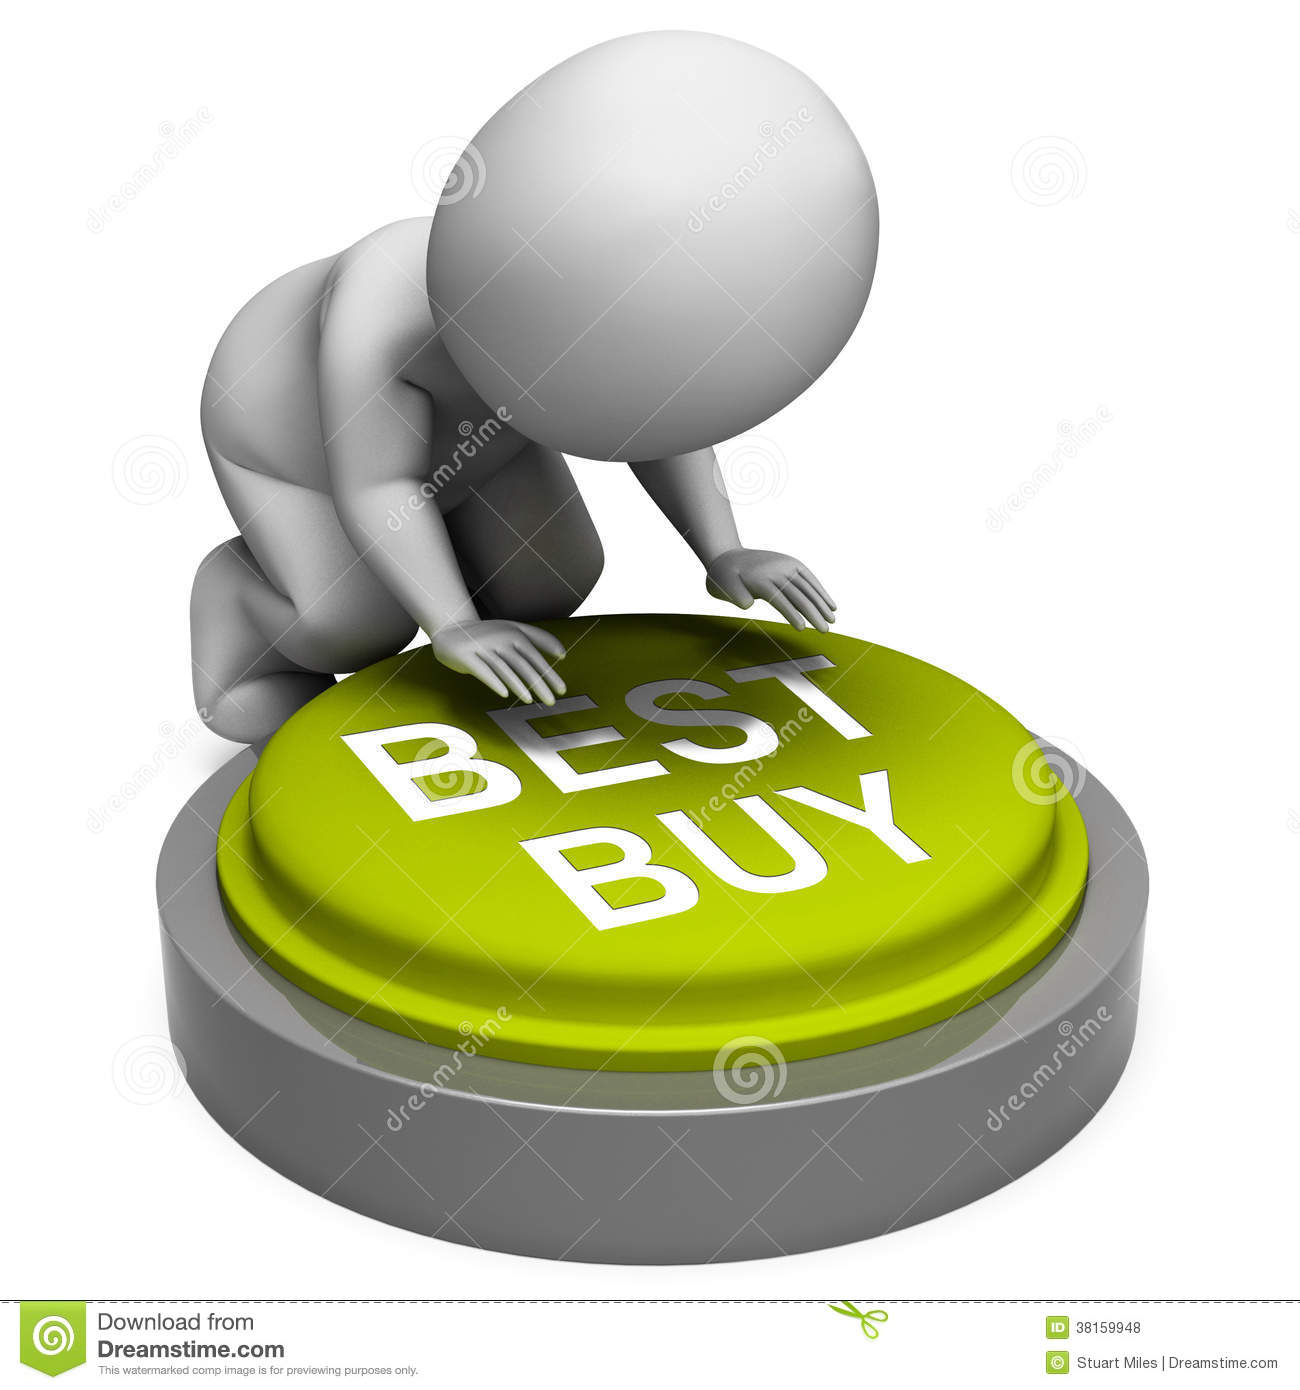 Best Buy Button Shows Superior Product Or Deal Royalty Free Stock Photos  Image: 38159948